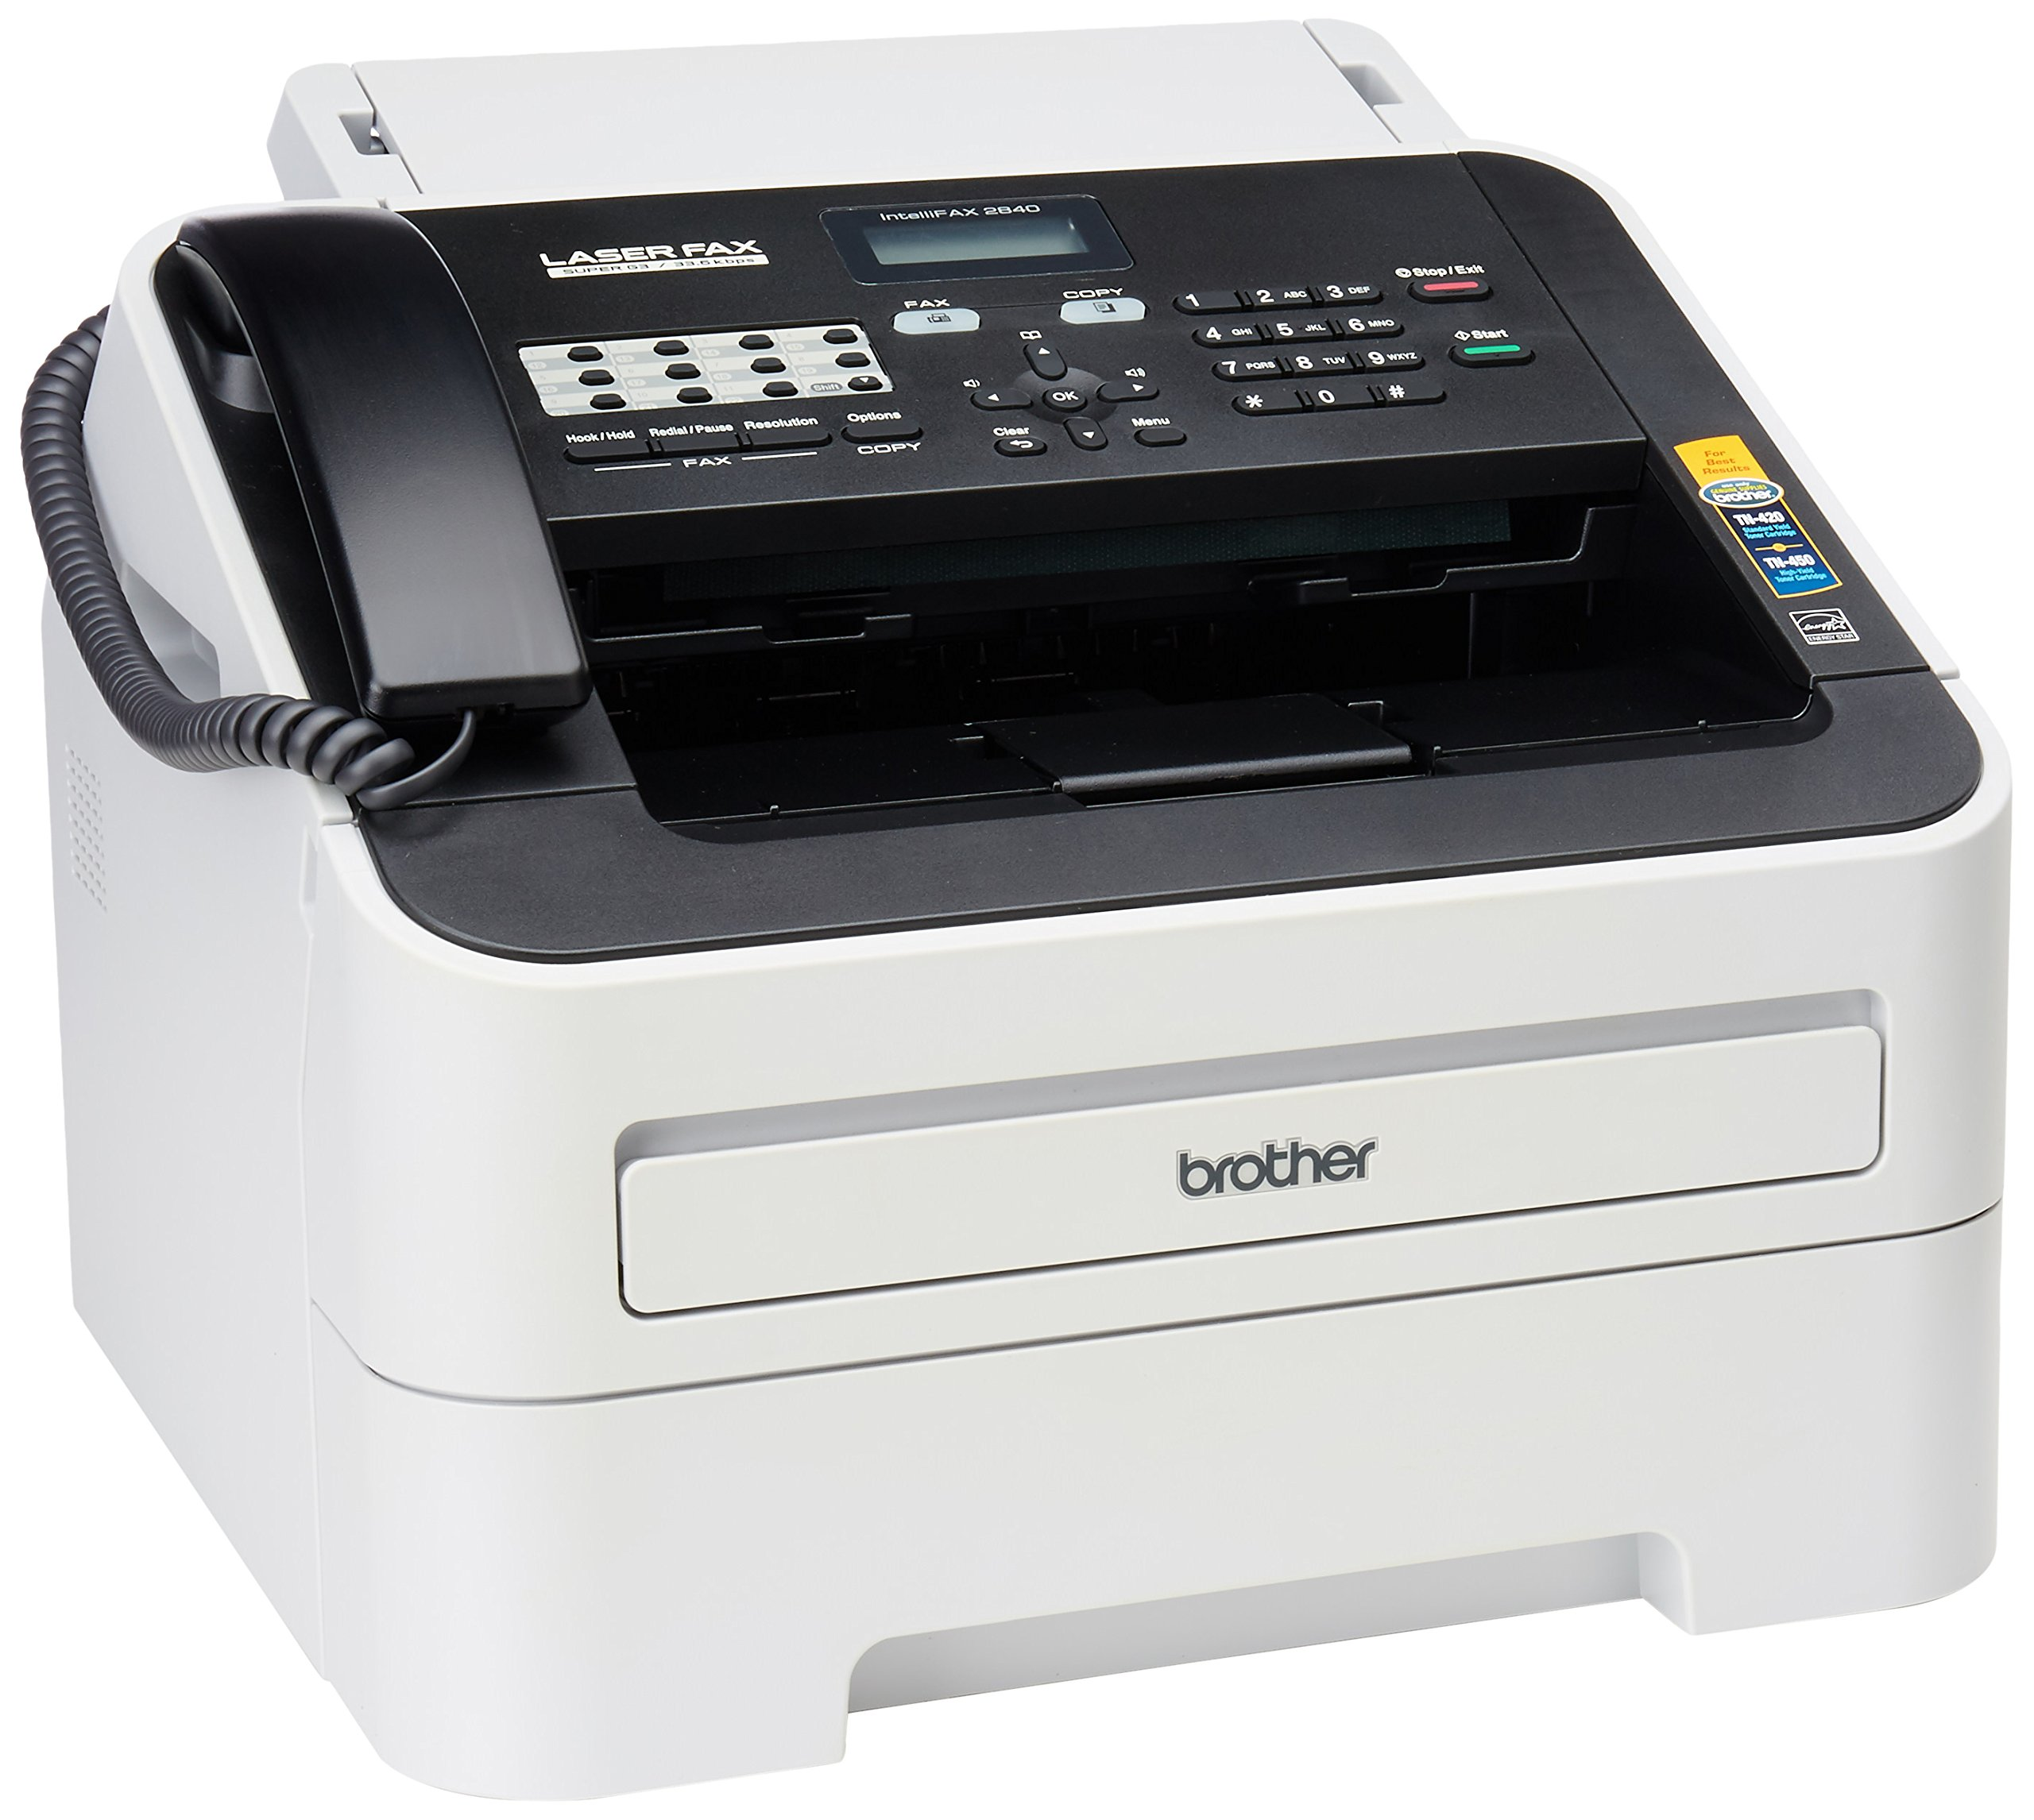 Brother FAX-2840 High Speed Mono Laser Fax Machine by Brother